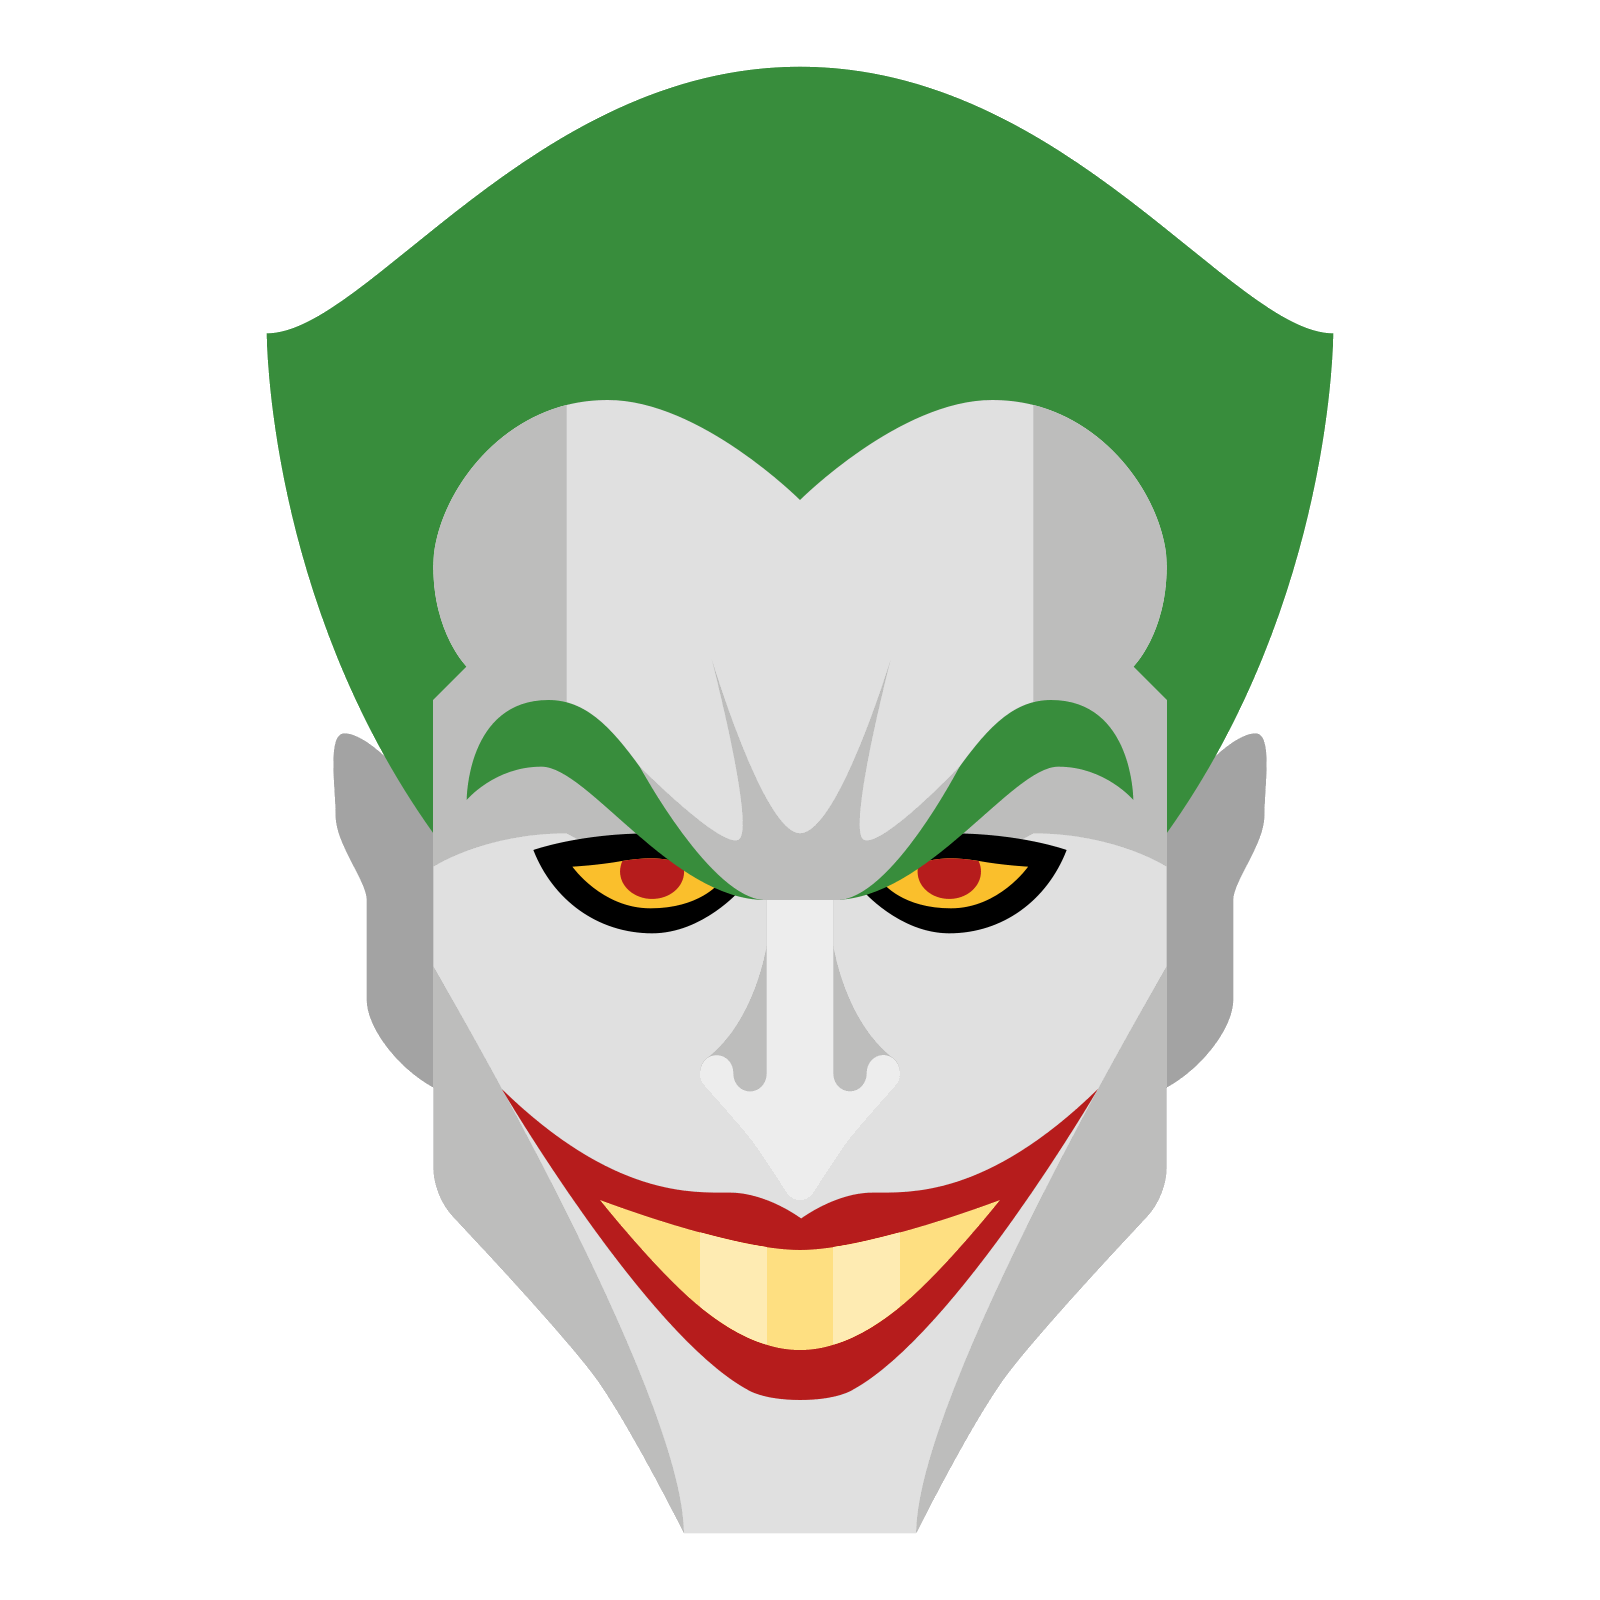 Joker Smile Vector